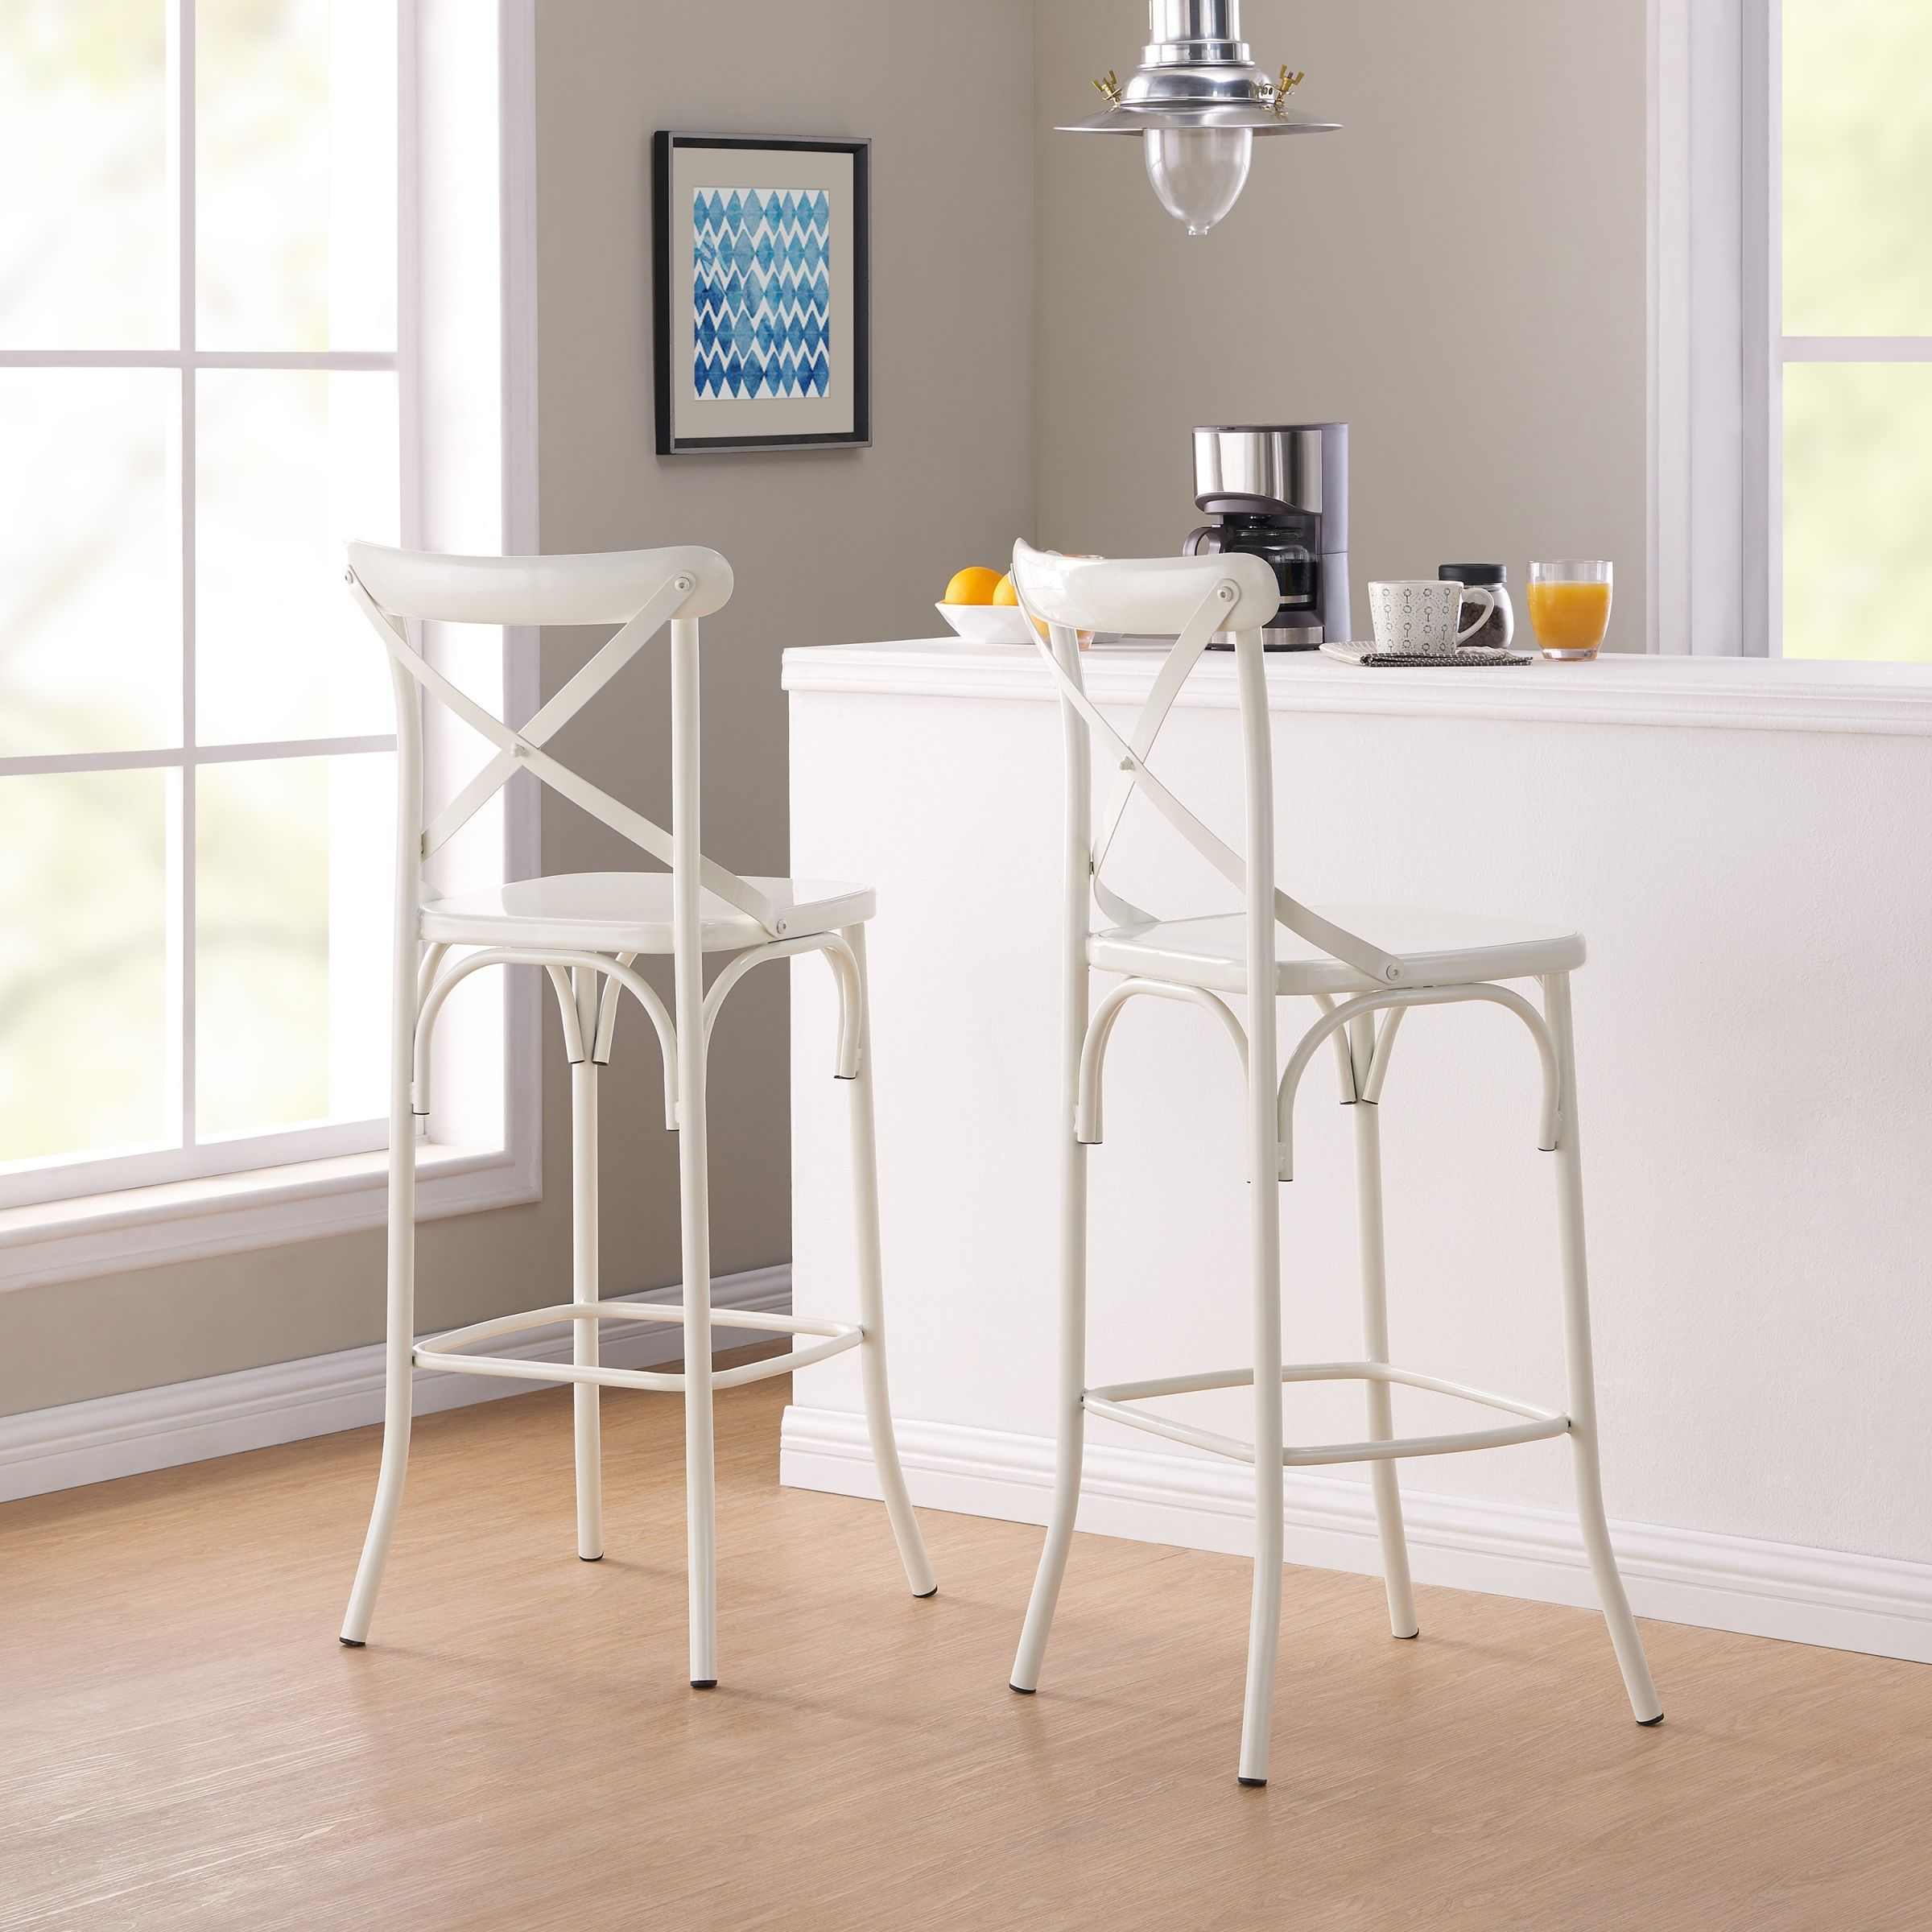 Better Homes Gardens Matilda Bar Stools Set Of 2 White Walmart Com Bar Stools Better Homes Gardens Home